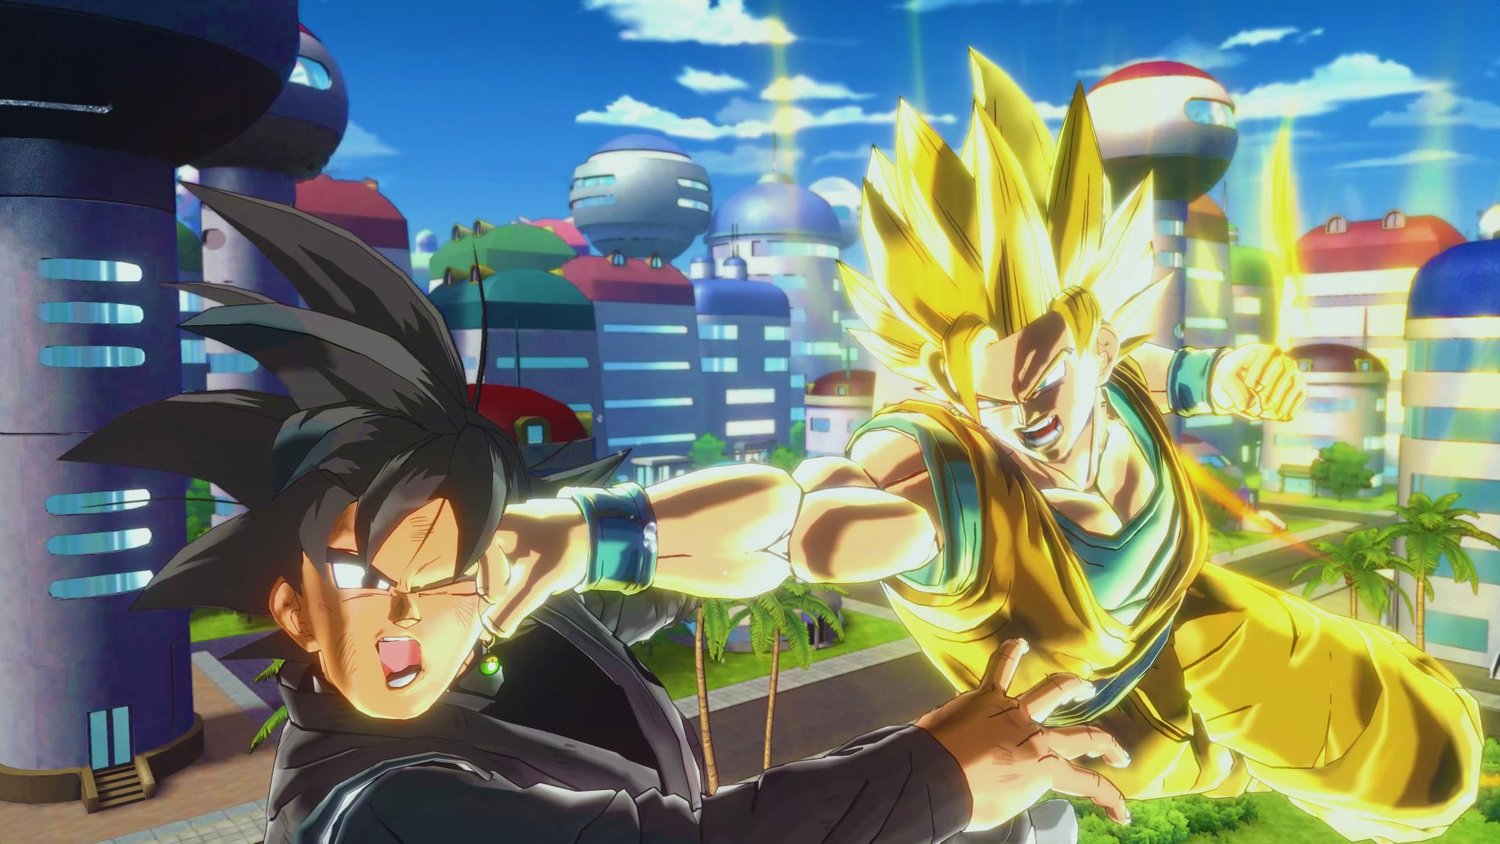 Review: If You Liked The First Game DRAGON BALL XENOVERSE 2 Will Be